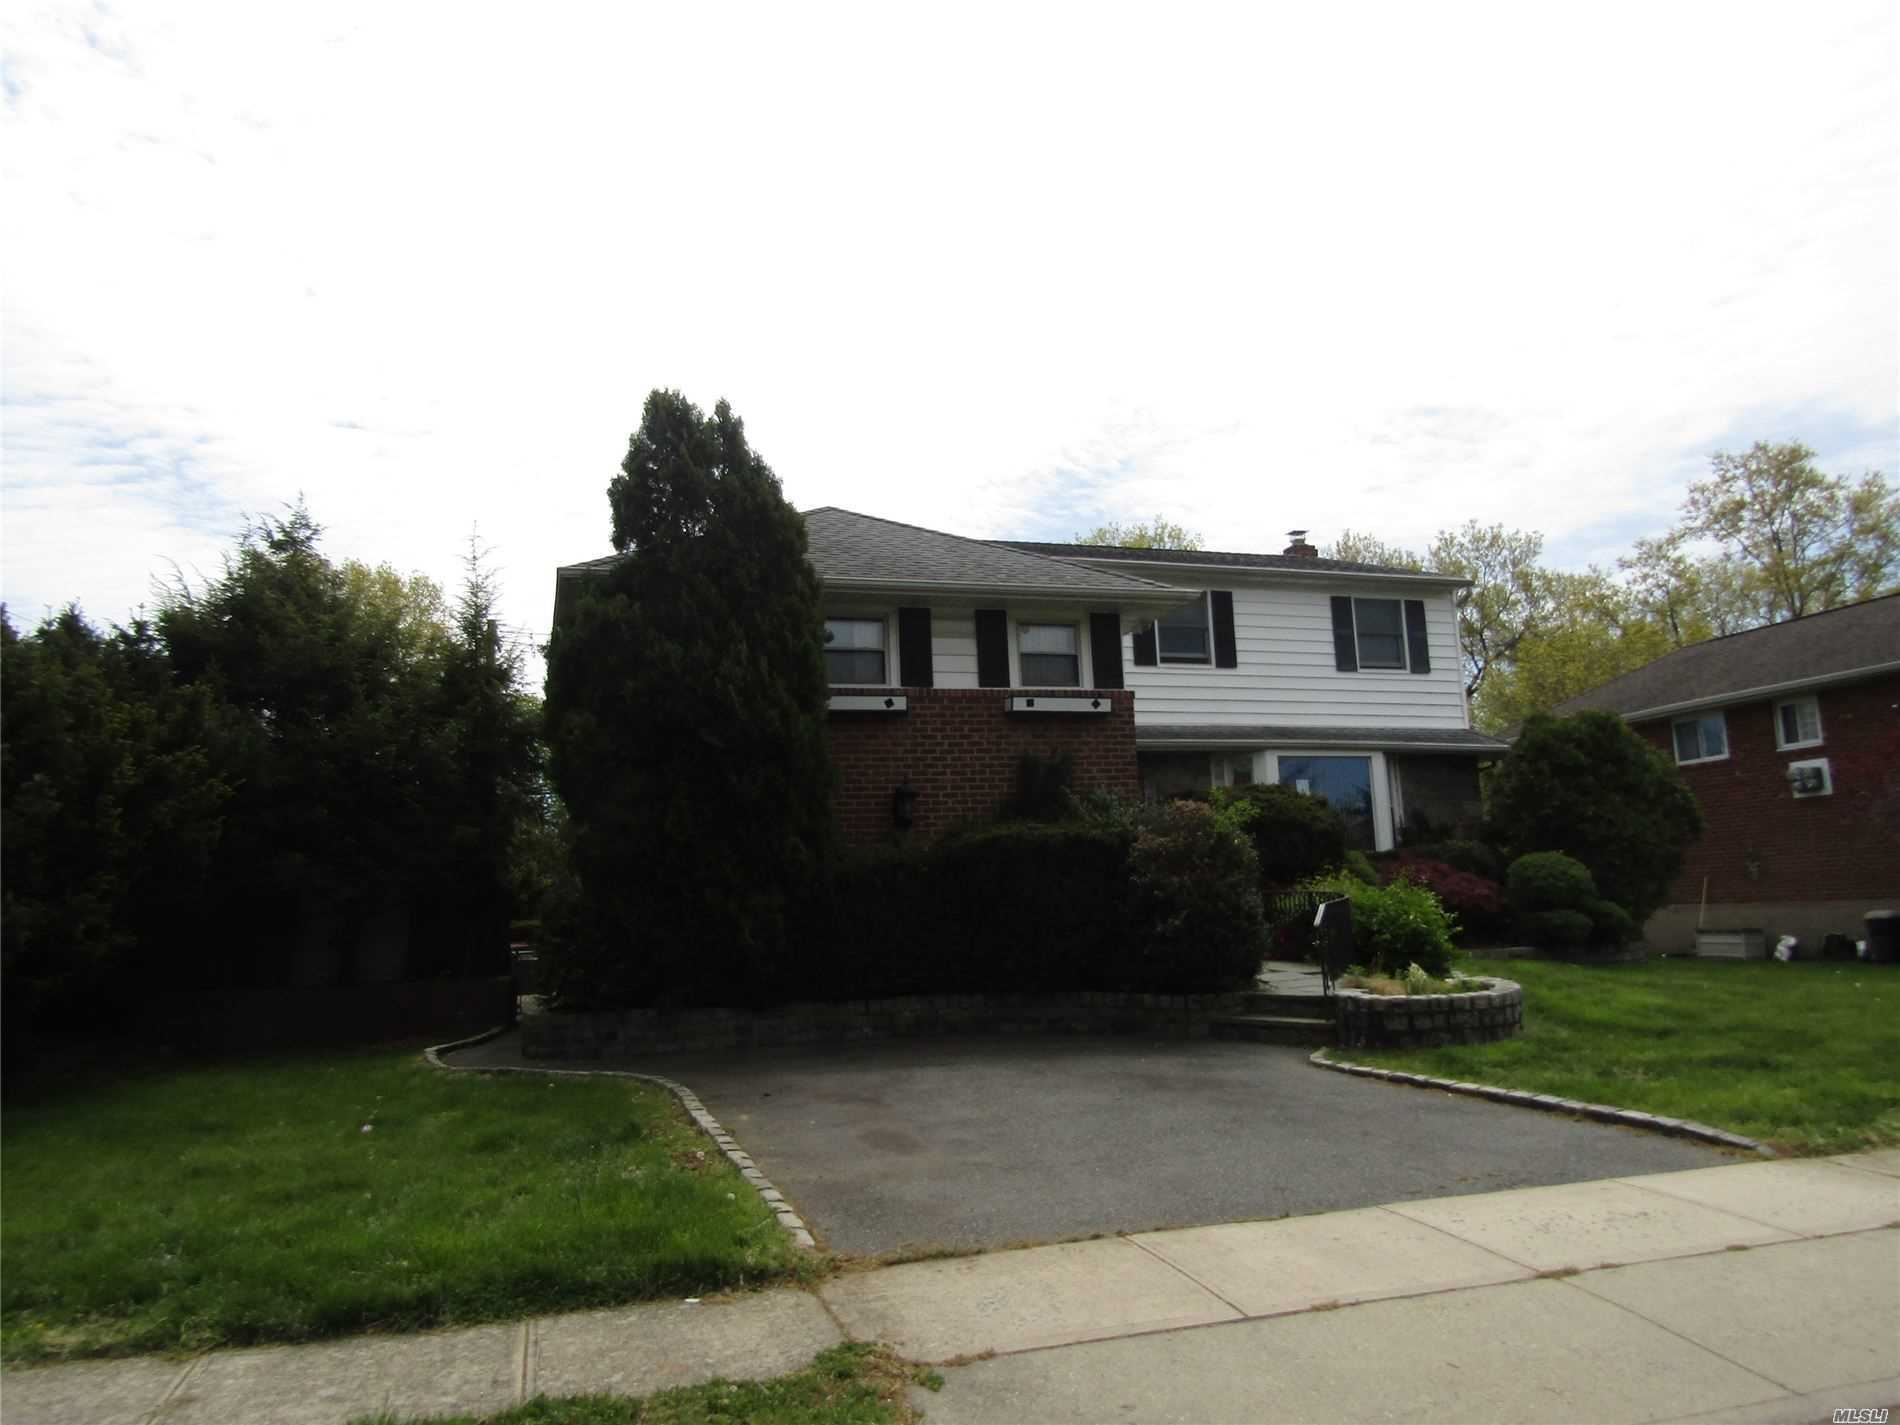 75 Parkway Dr, Syosset, NY 11791 - MLS#: 3236576